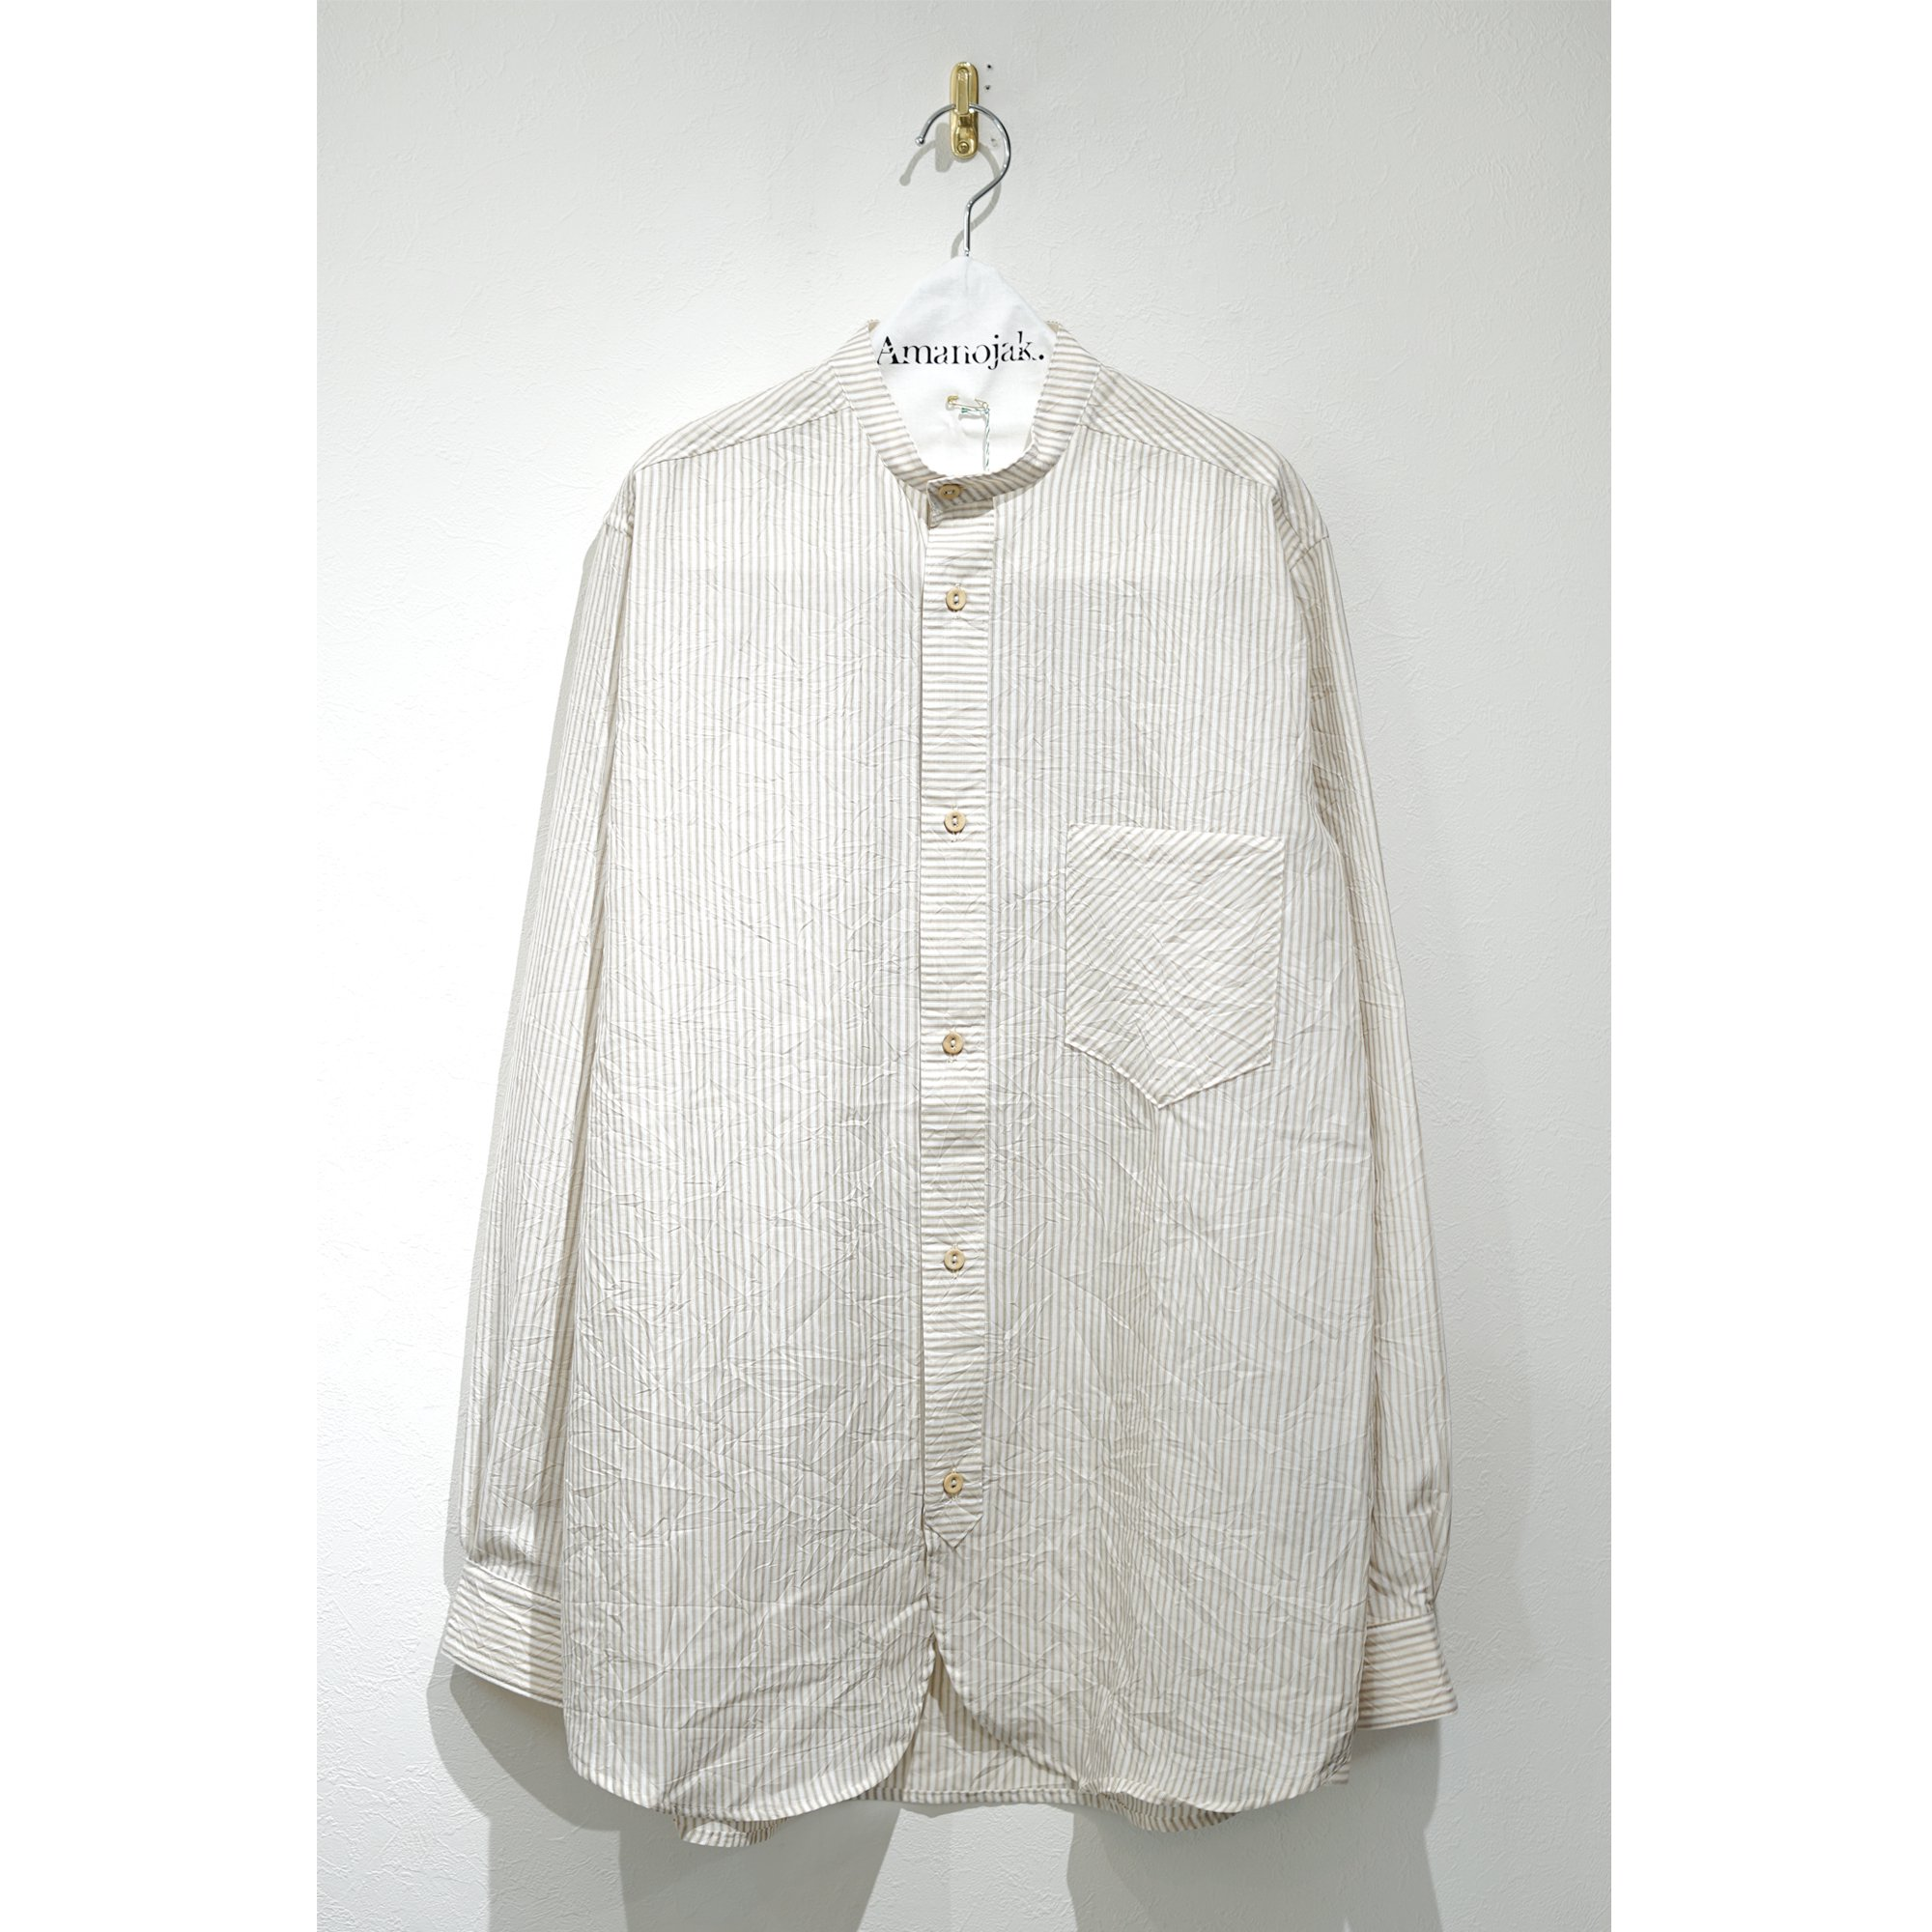 FRANK LEDER-CRUSHED COTTON BAND COLLAR SHIRTS